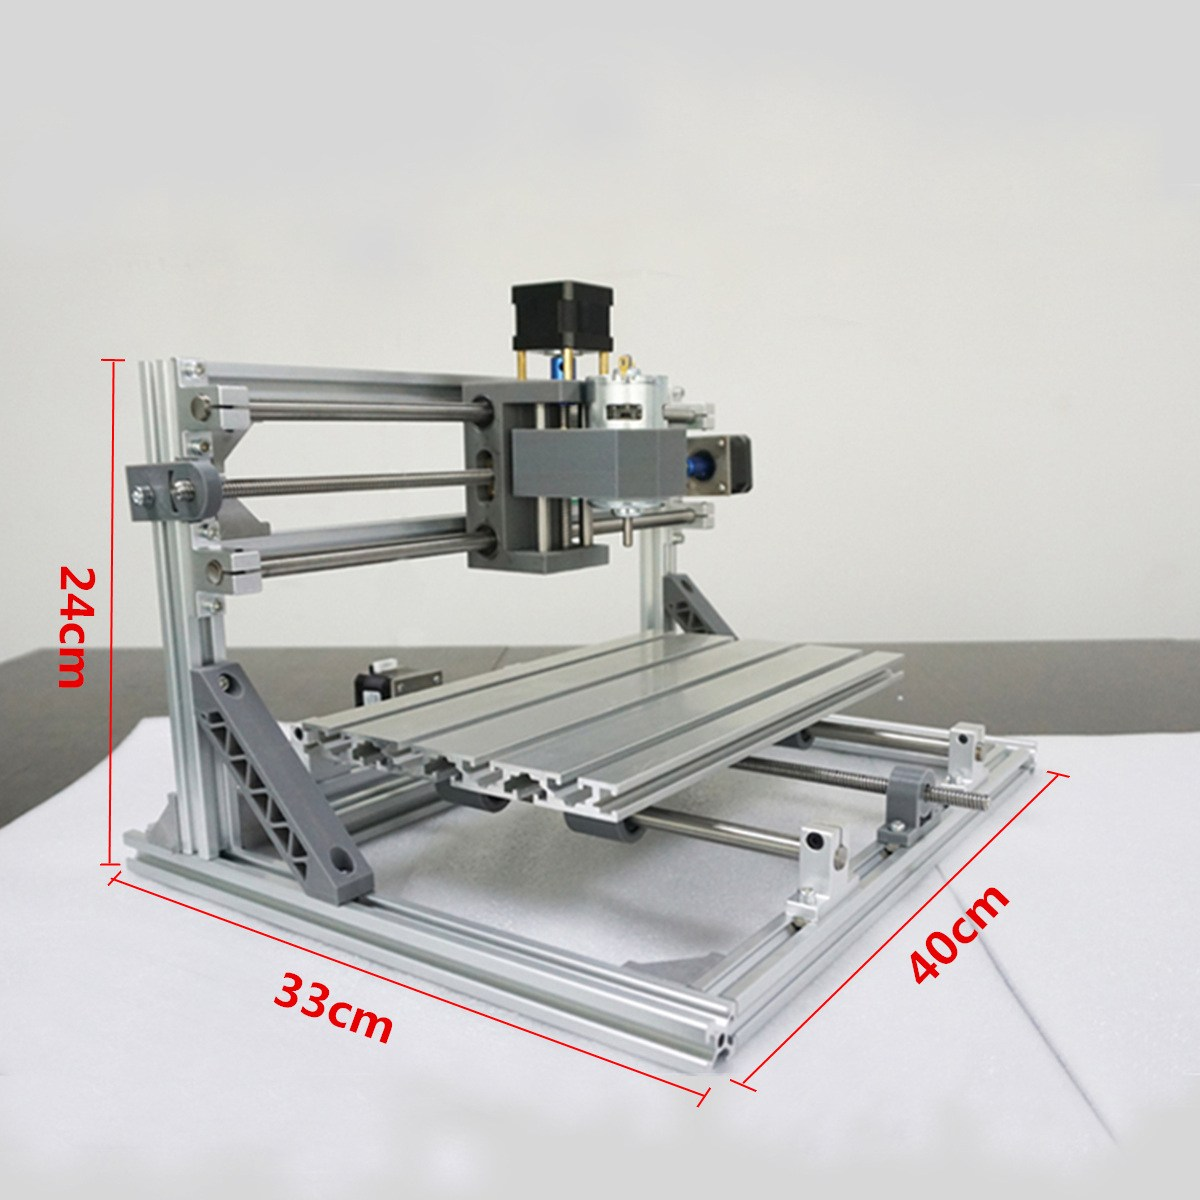 DIY 3018 CNC Router ER11 GRBL Control Diy CNC Machine,3 Axis PCB Milling Machine,Wood Router Laser Engraving